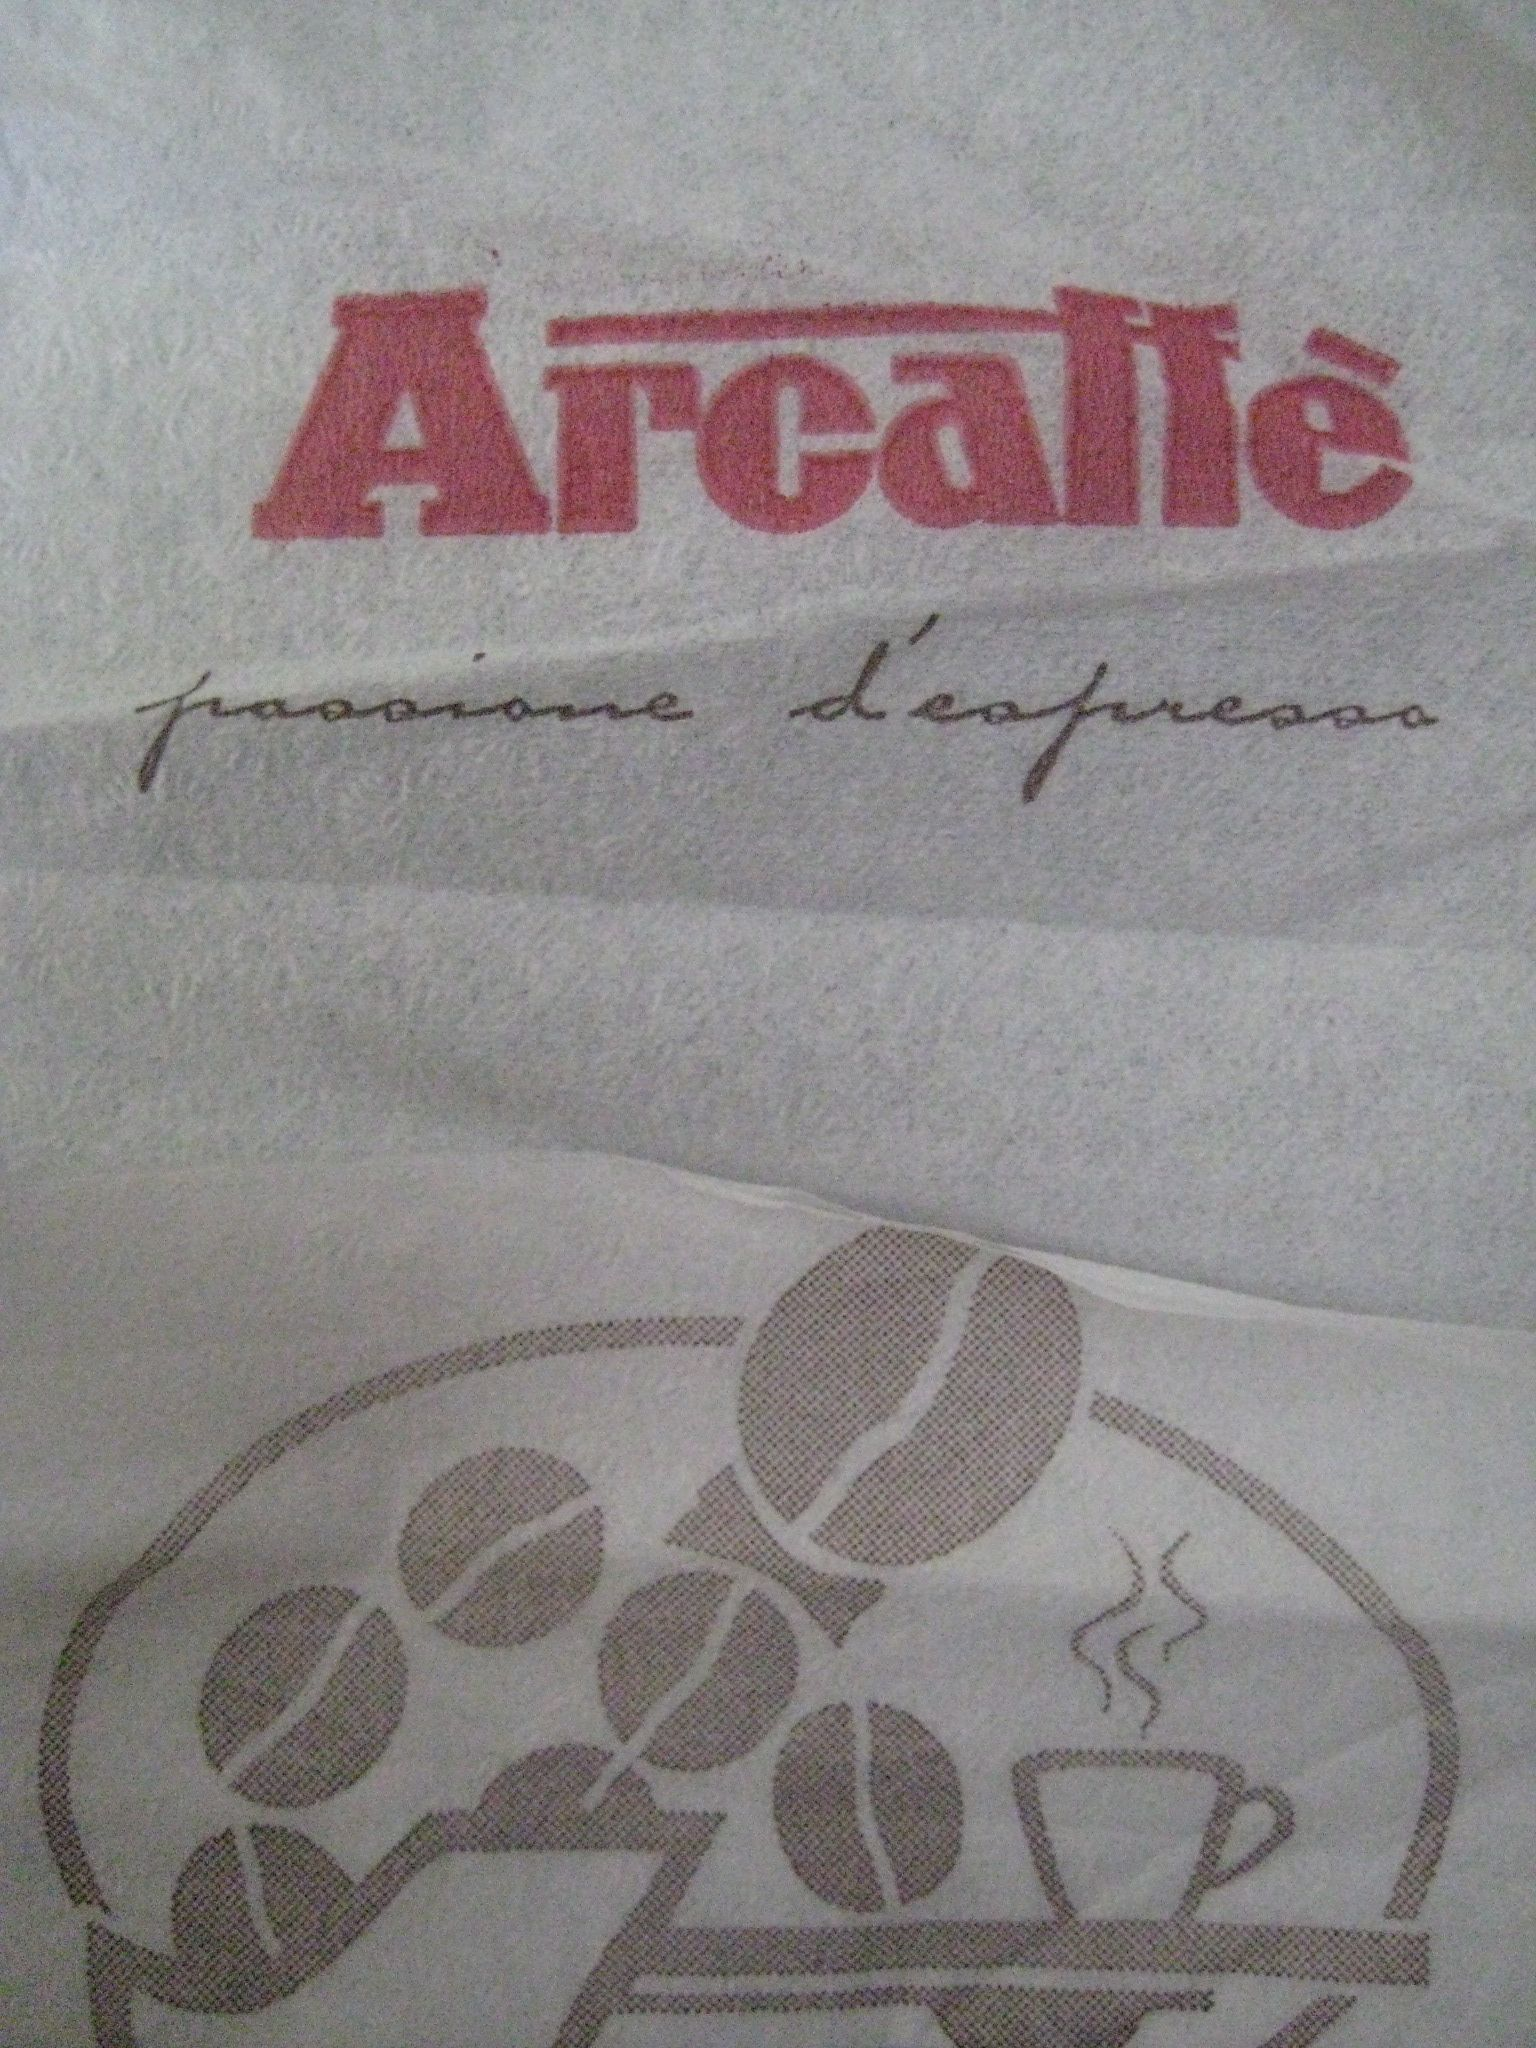 arcalle by fementido